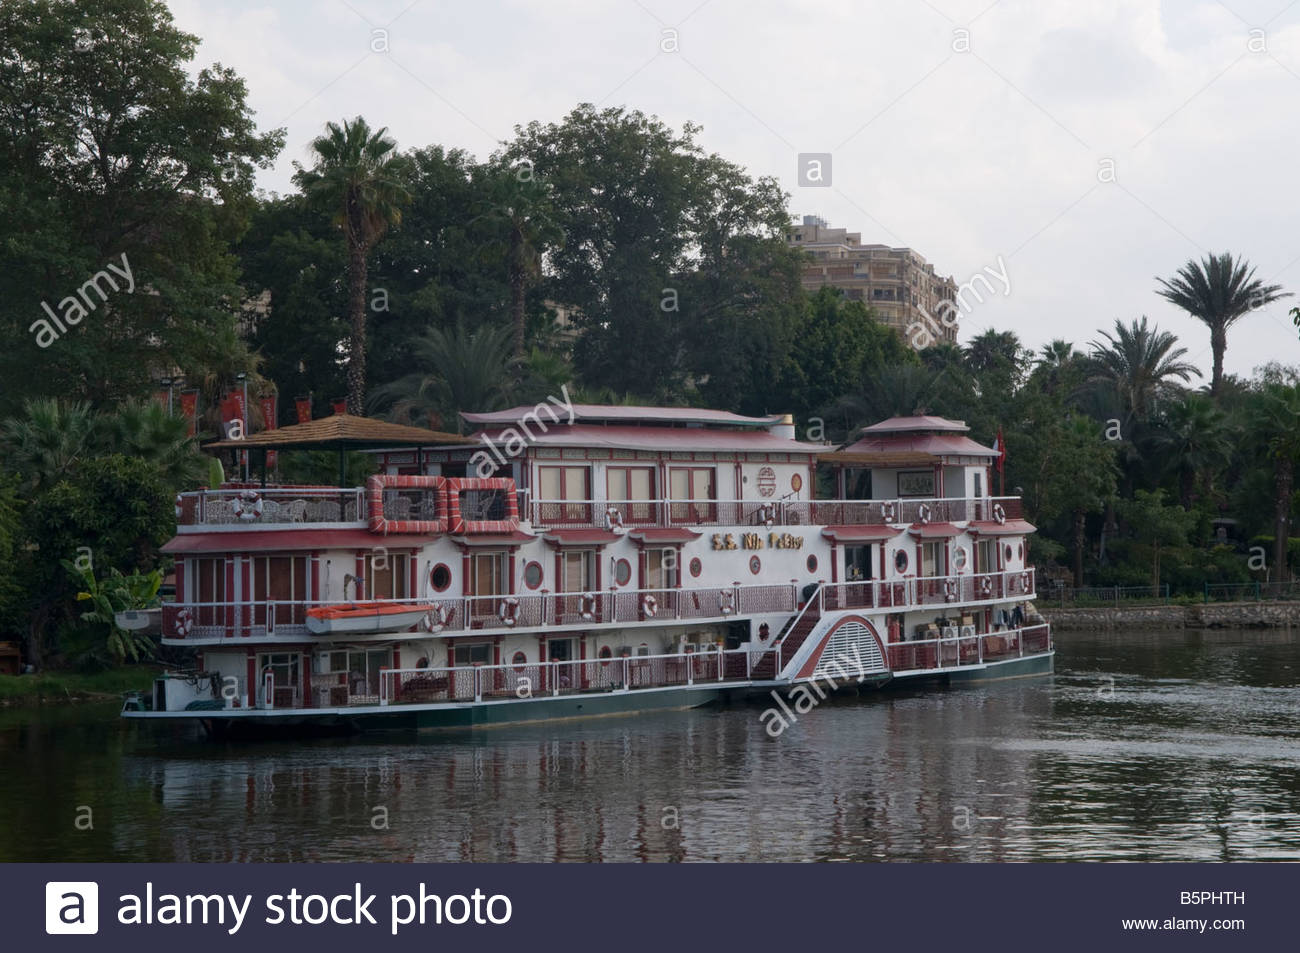 Floating Boat Restaurant In Garden City District Cairo Egypt Stock Photo Royalty Free Image